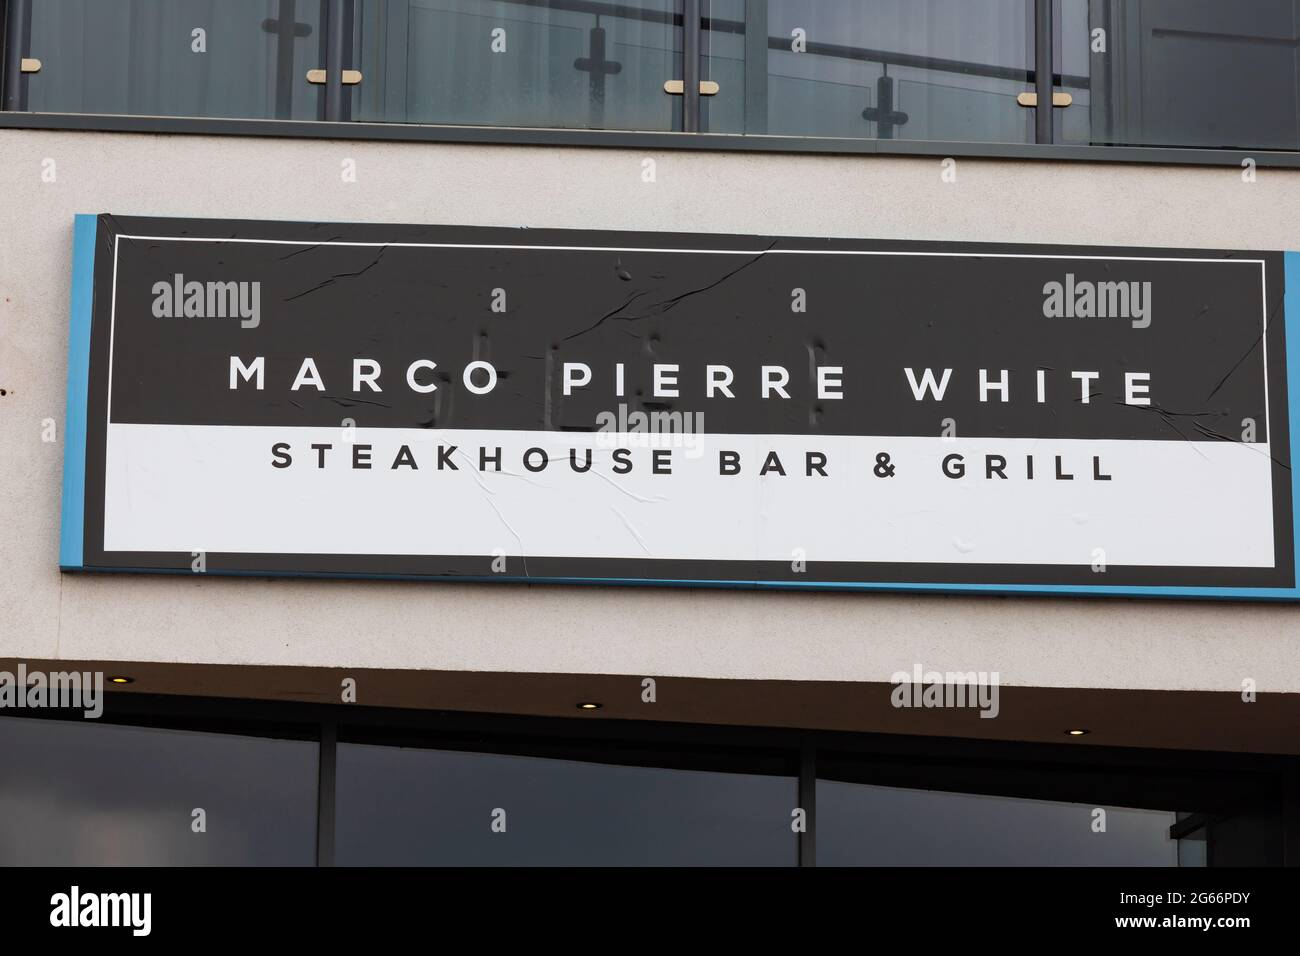 Panneau Marco Pierre White Steakhouse Bar & Grill. Brayford Pool, Lincoln, Lincolnshire, Angleterre Banque D'Images